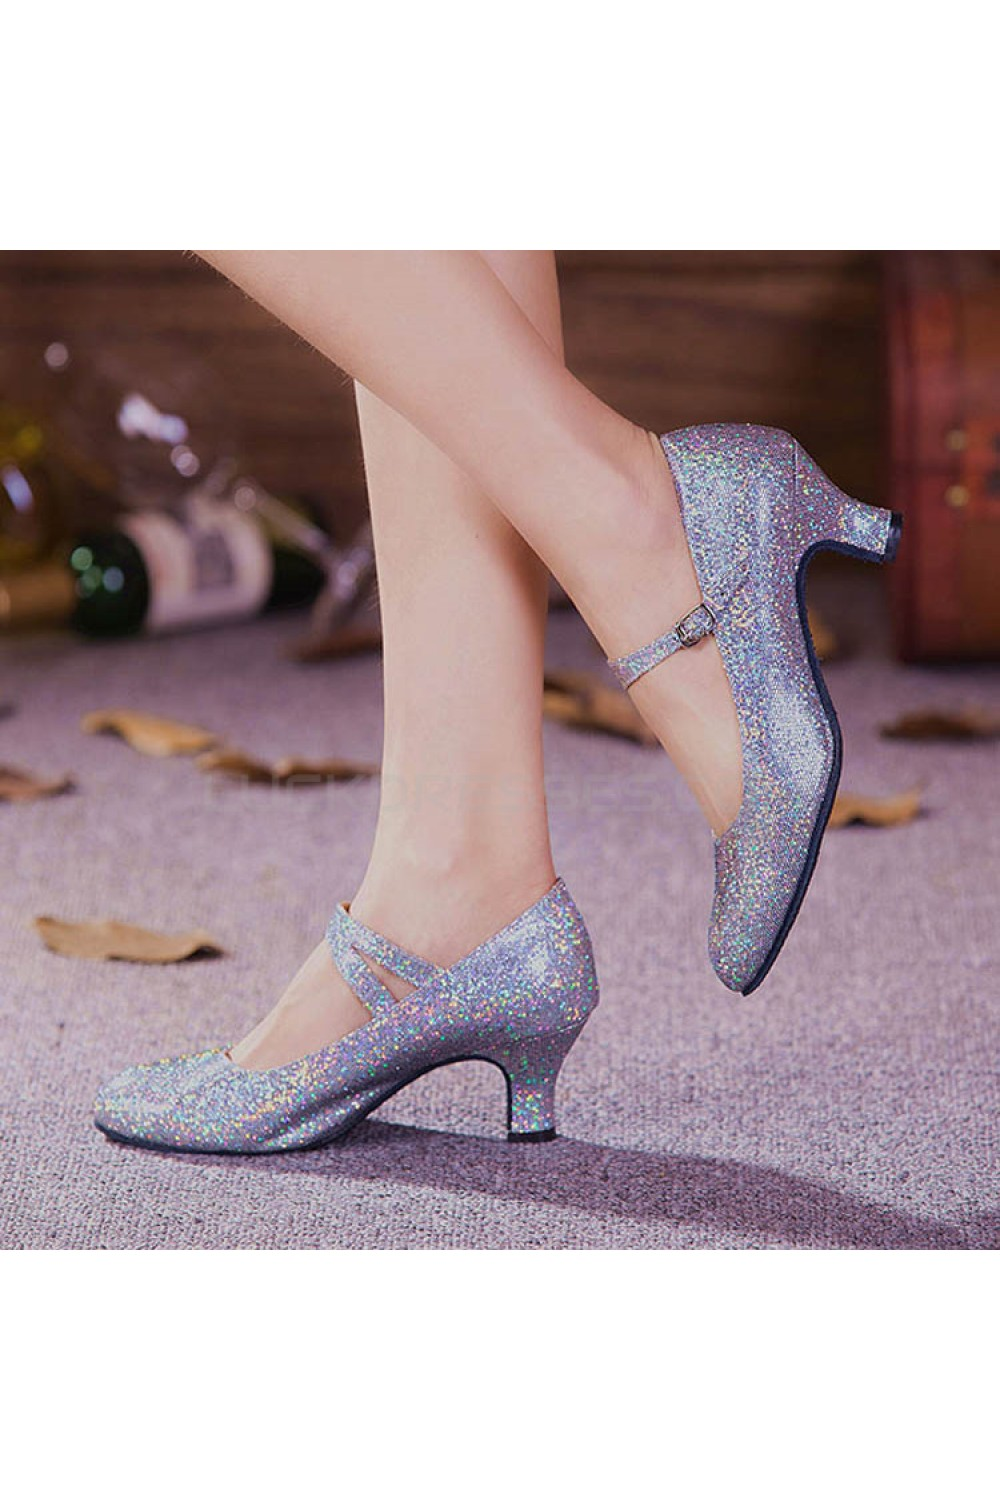 ff817e11b Women's Silver Sparkling Glitter Heels With Buckle Latin Ballroom/Outdoor  Dance Shoes Wedding Party Shoes D801055